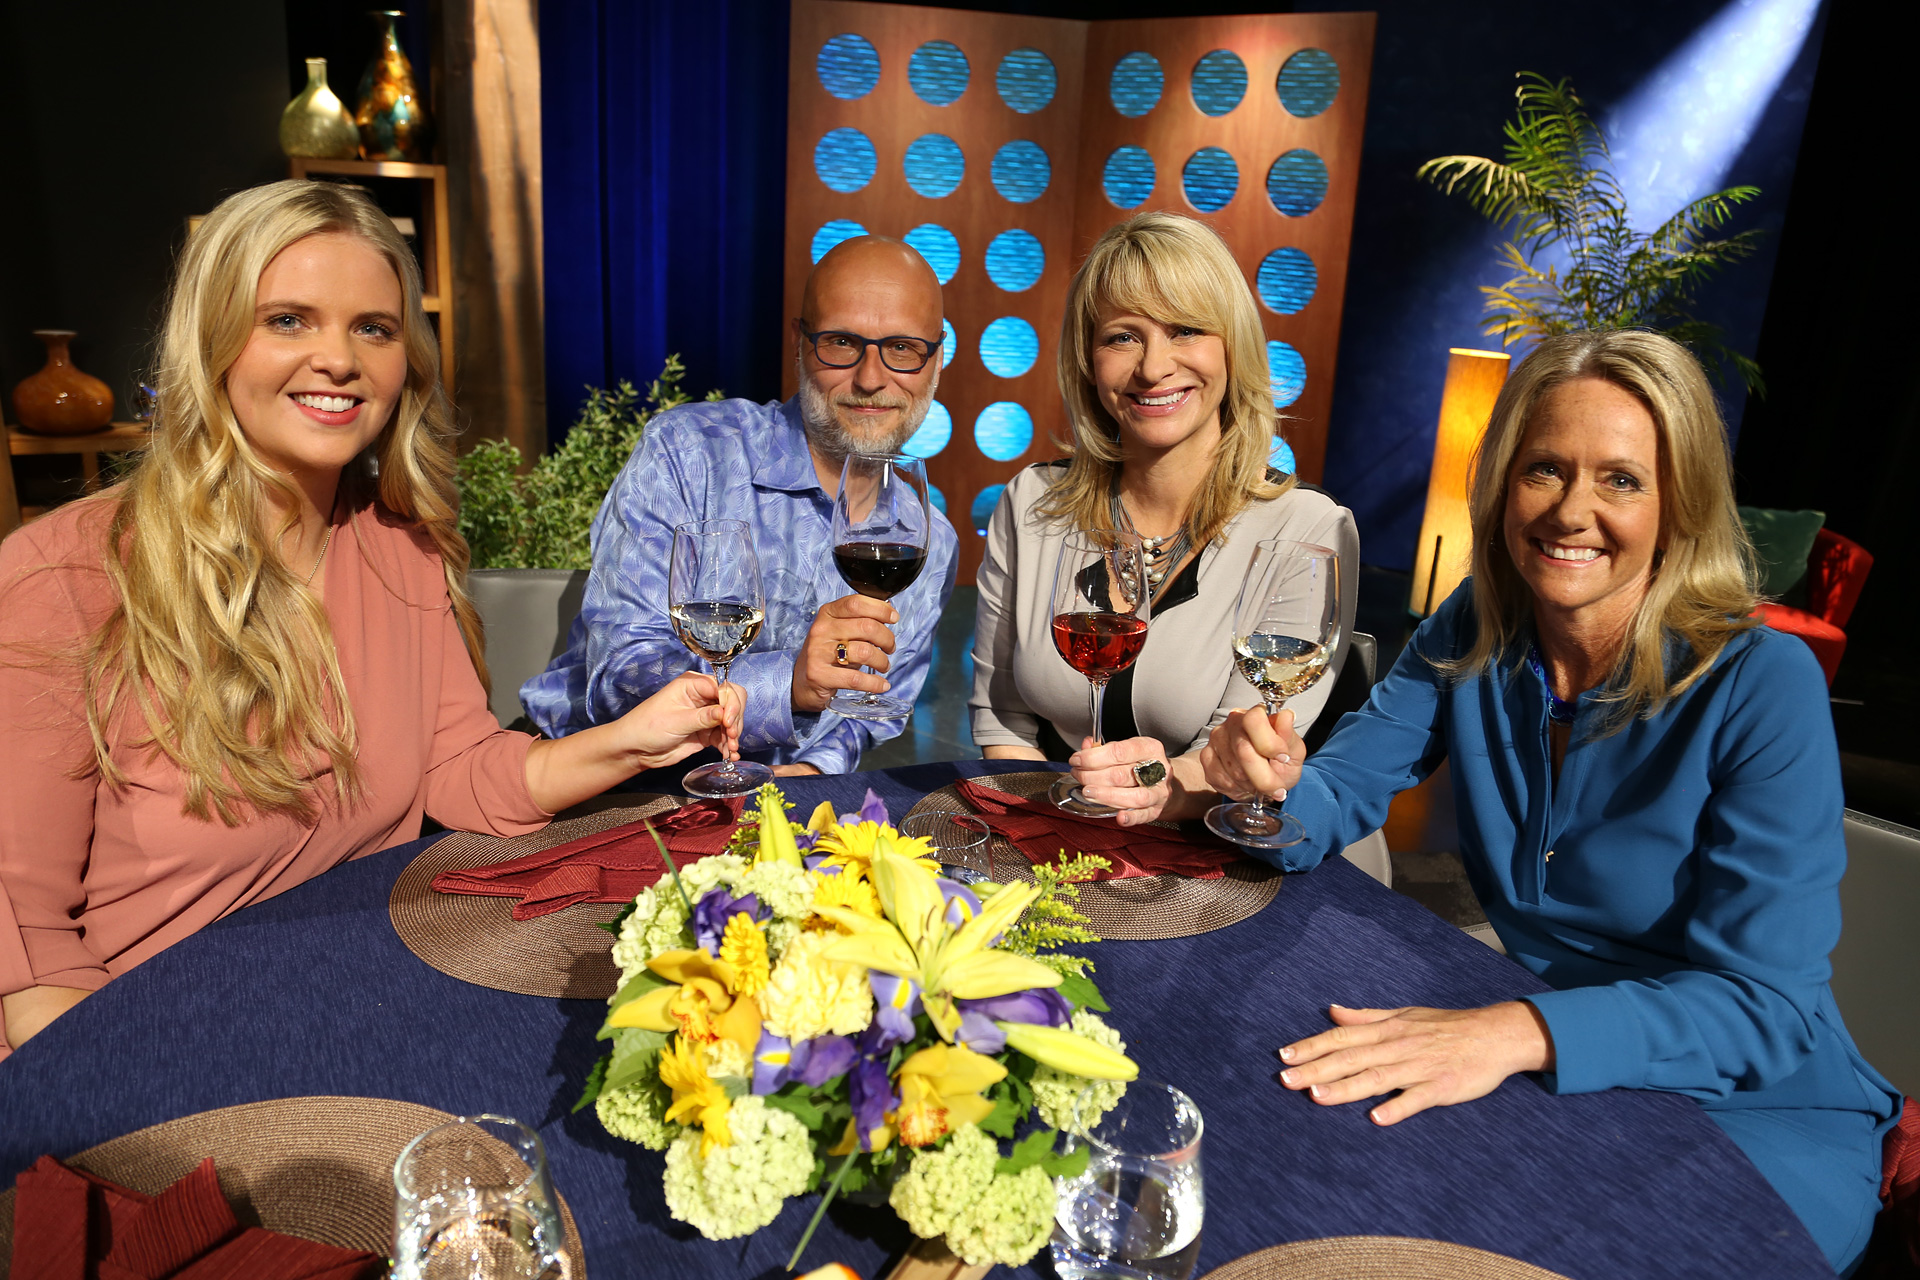 Host Leslie Sbrocco and guests on the set of the episode 12 of season 11.